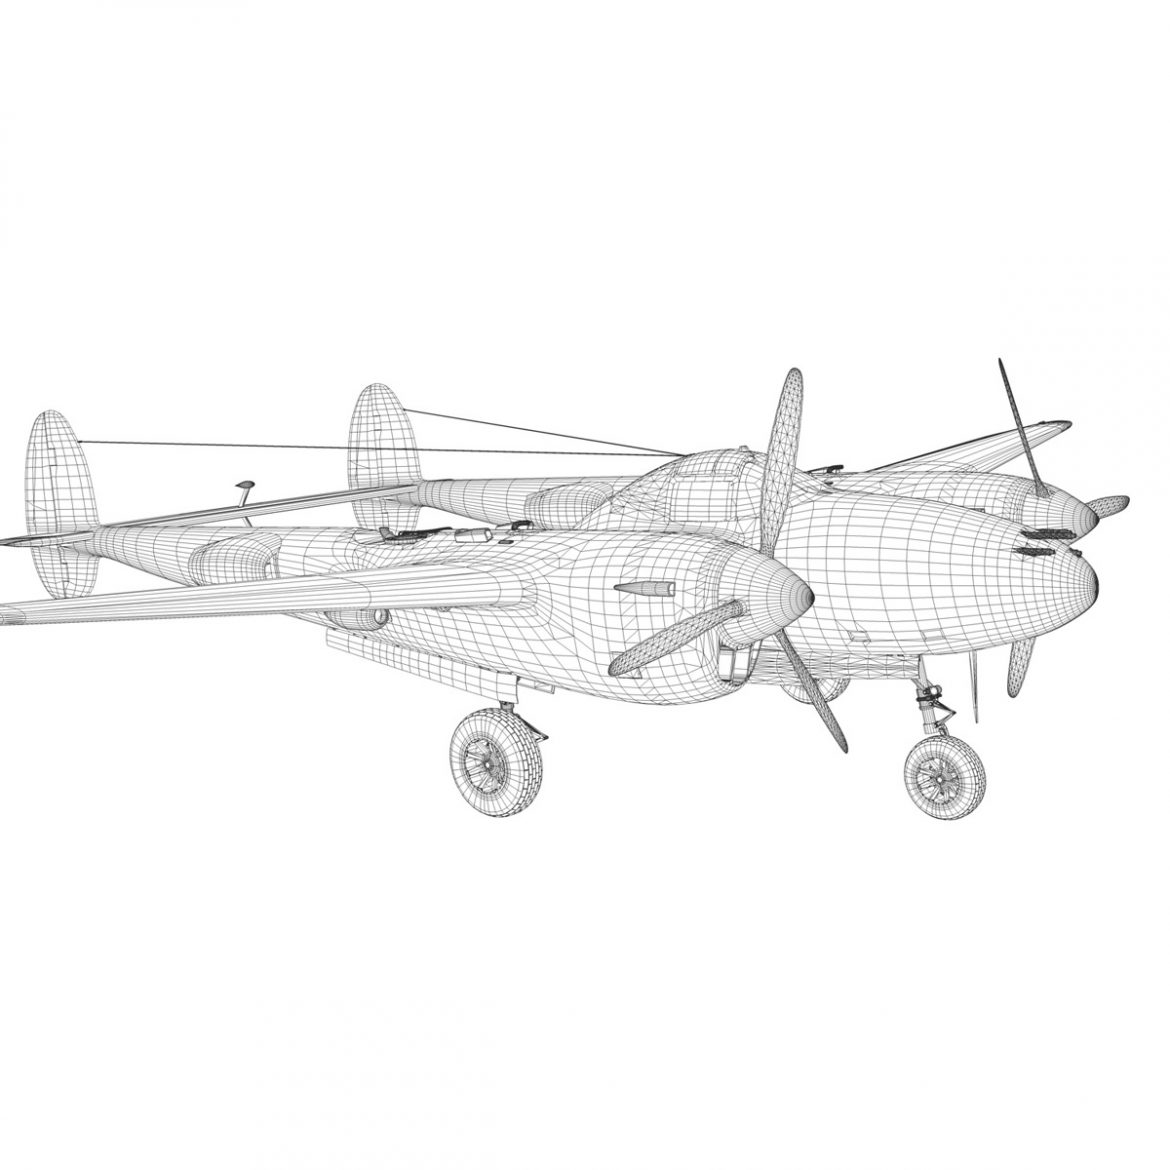 lockheed p-38 lightning – gentle annie 3d model fbx c4d lwo obj 300097